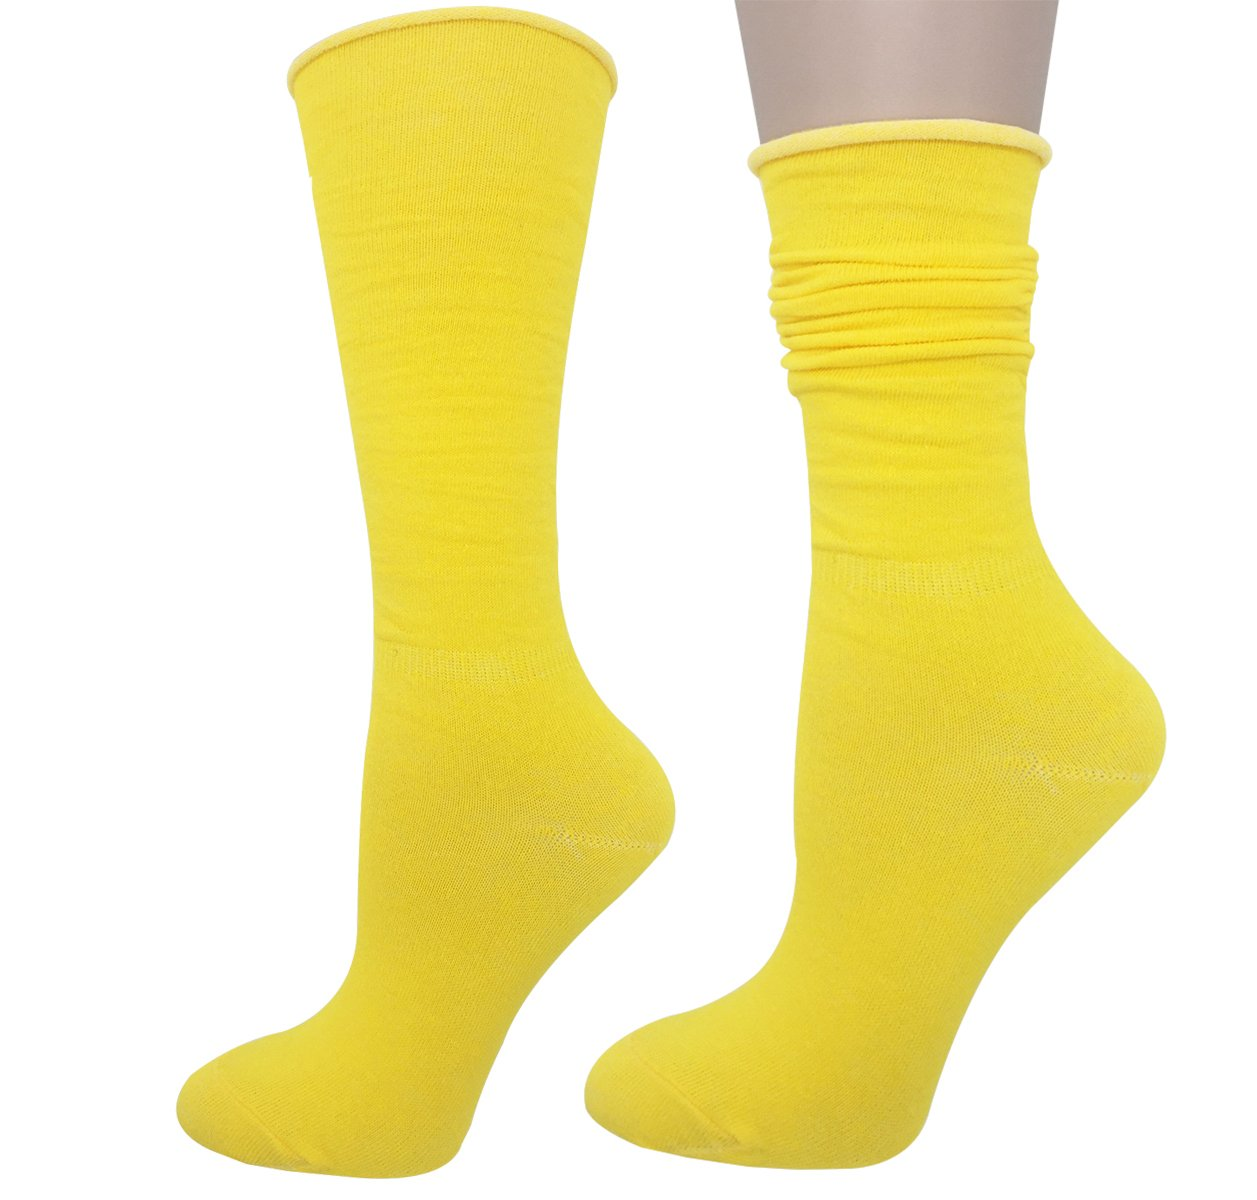 Cityelf Women's Classic Roll Top Cotton Compression Socks (6 pairs, mix) by Cityelf (Image #5)